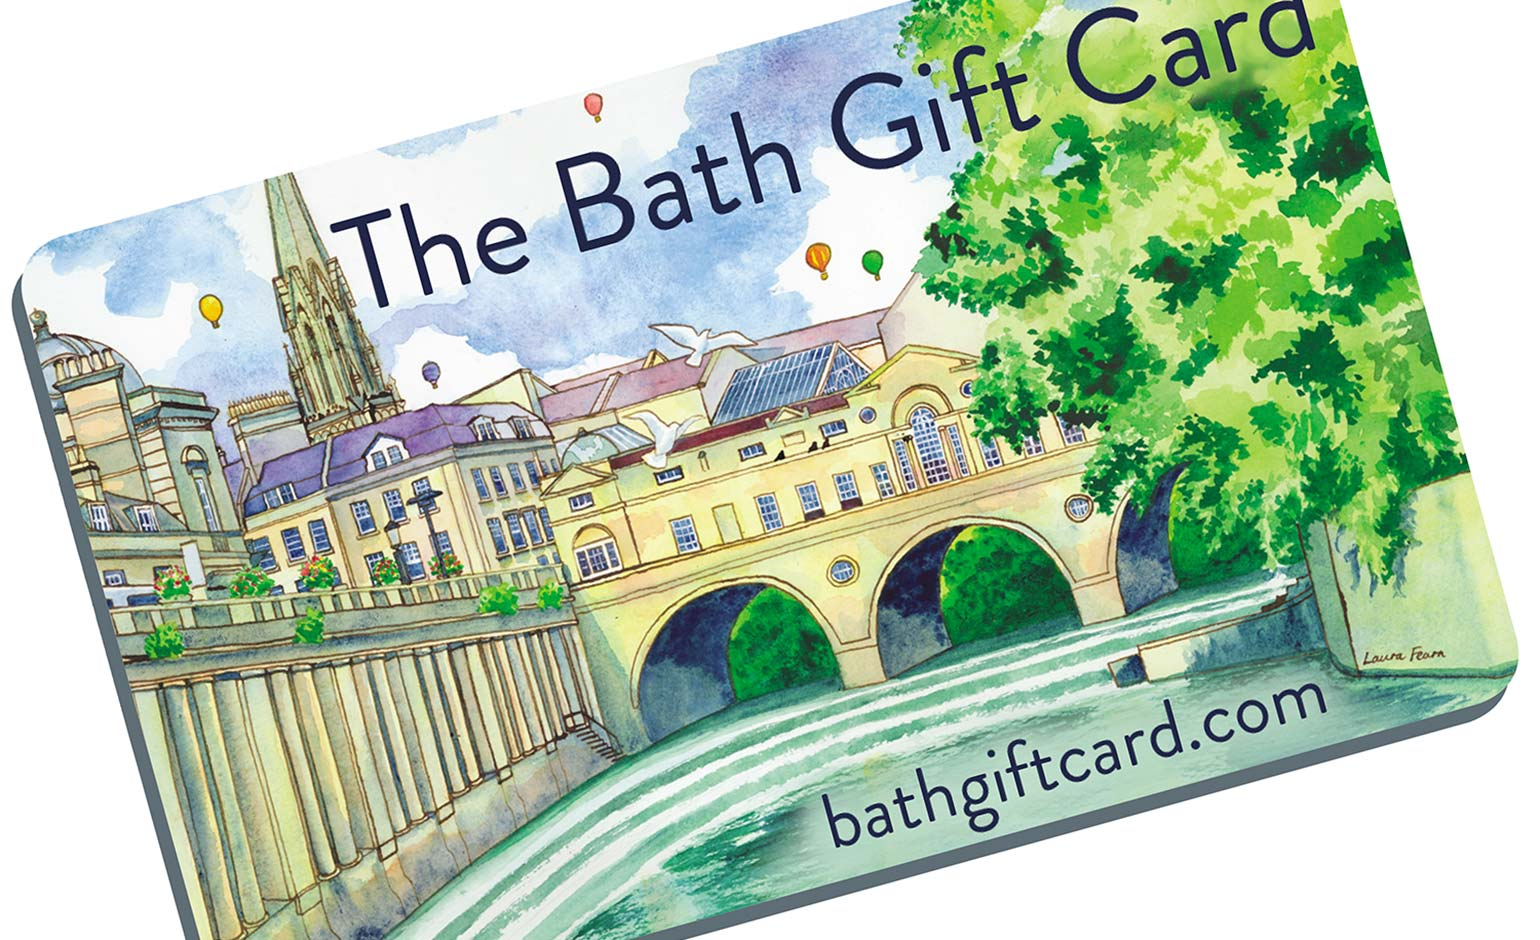 New Bath Gift Card launched to help boost local businesses and economy